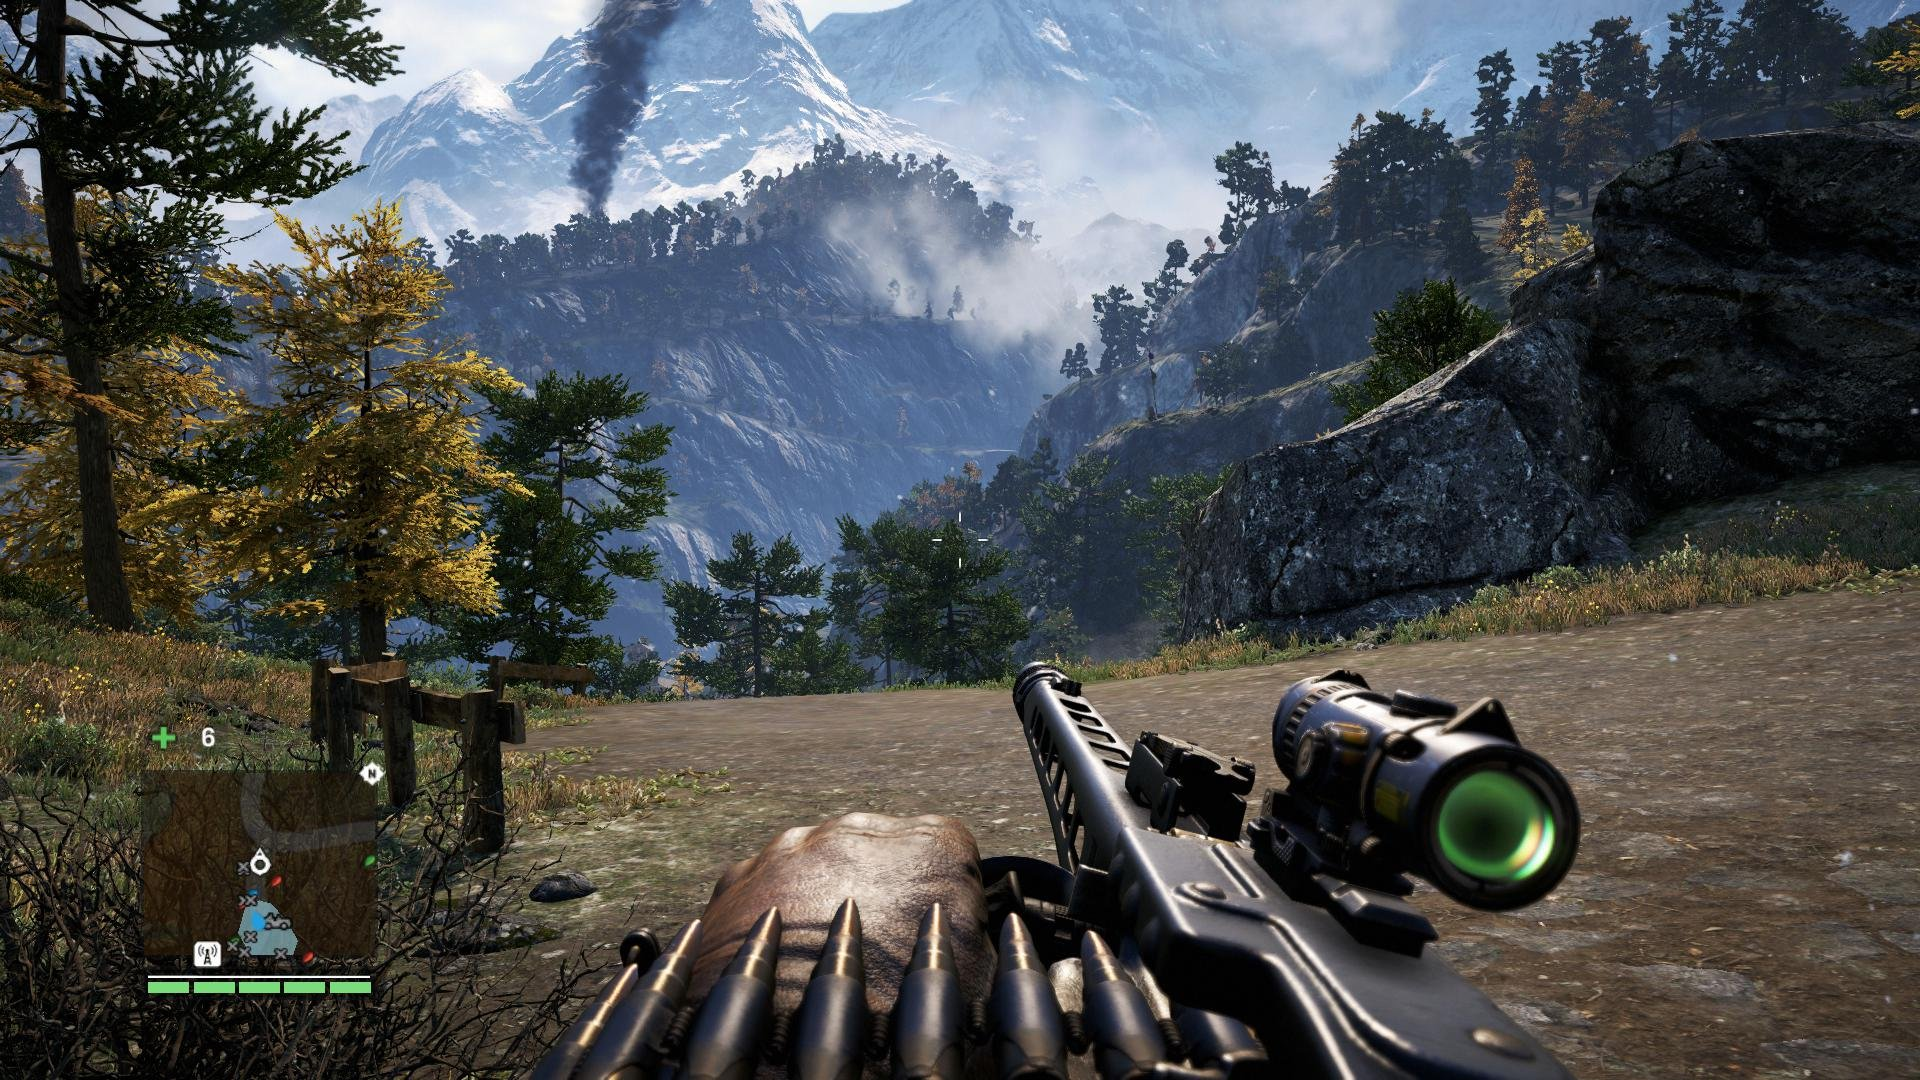 Far  Cry 4 - Page 2 C68a5f77-aaac-45c3-8383-2c810c939a35